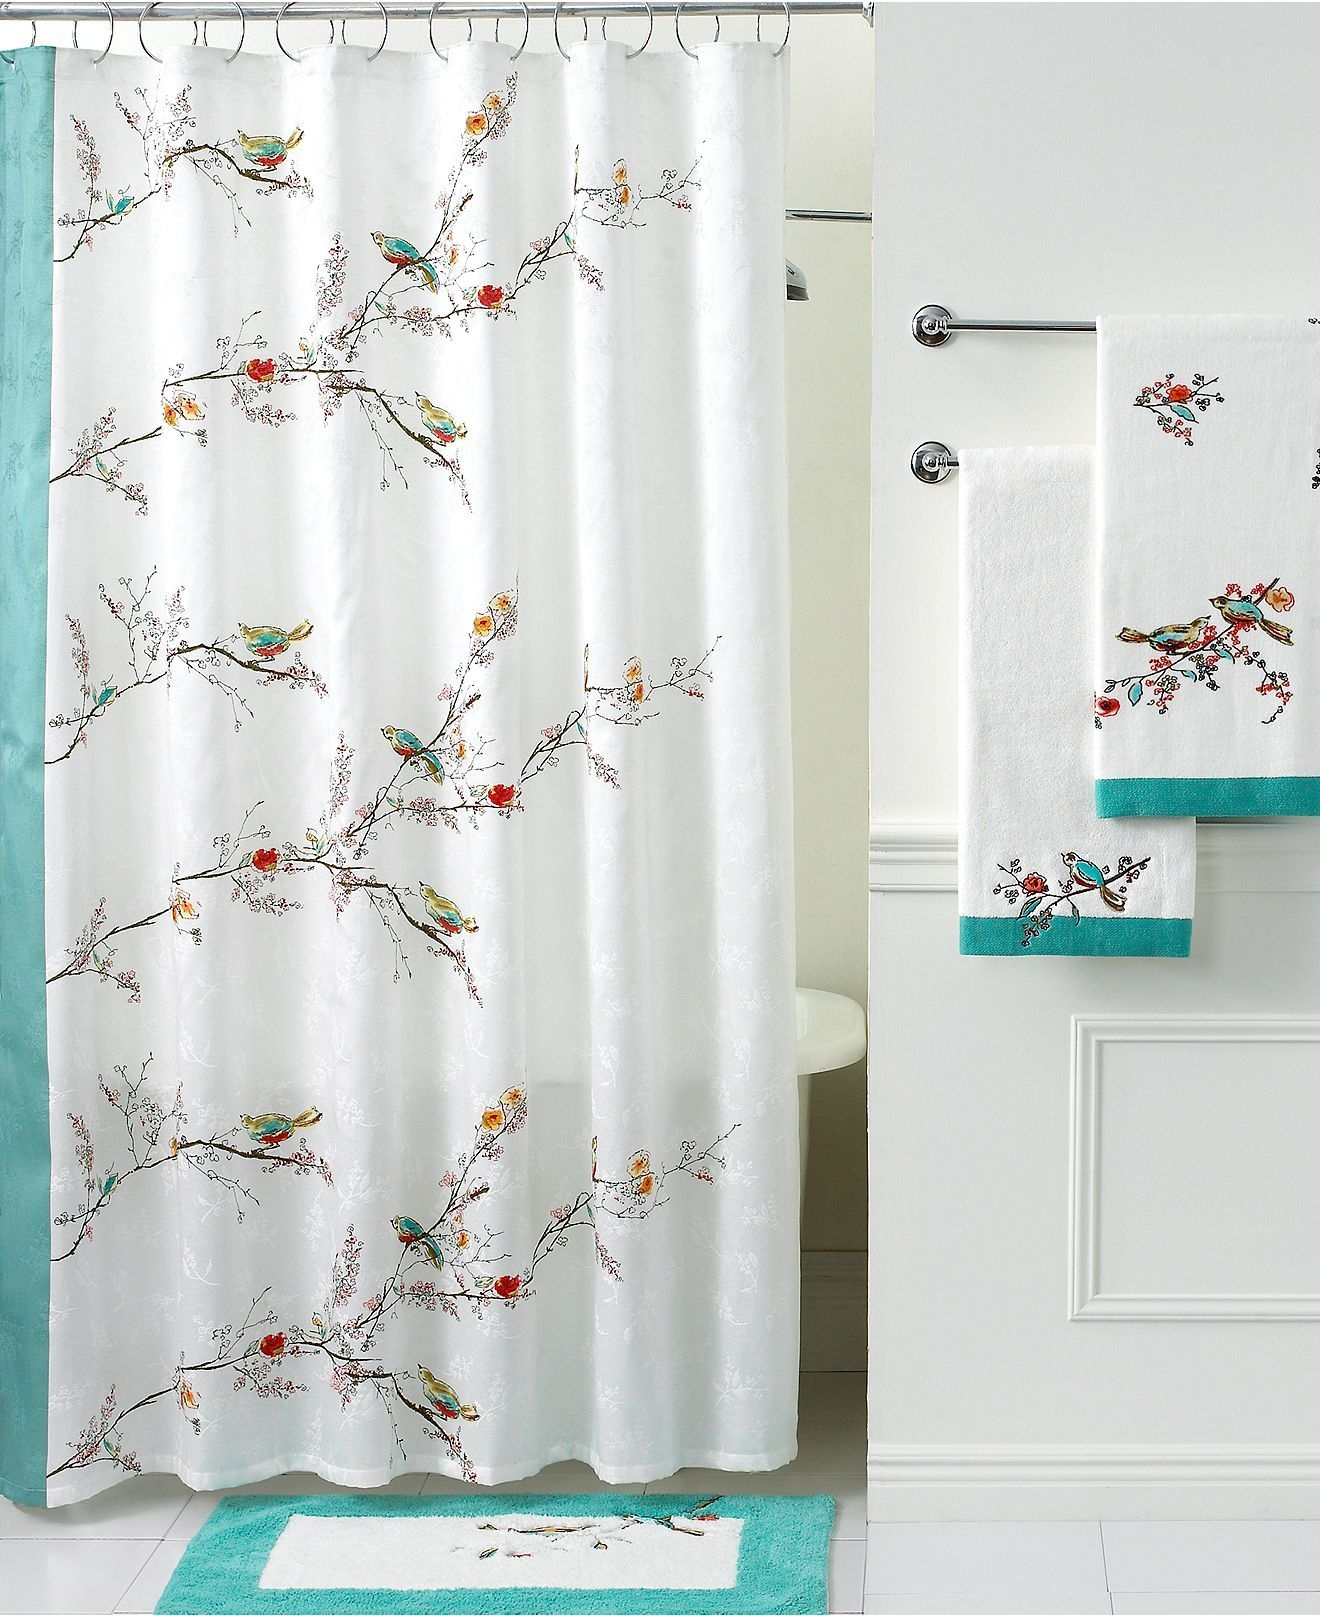 Lenox chirp shower curtain bird shower curtain